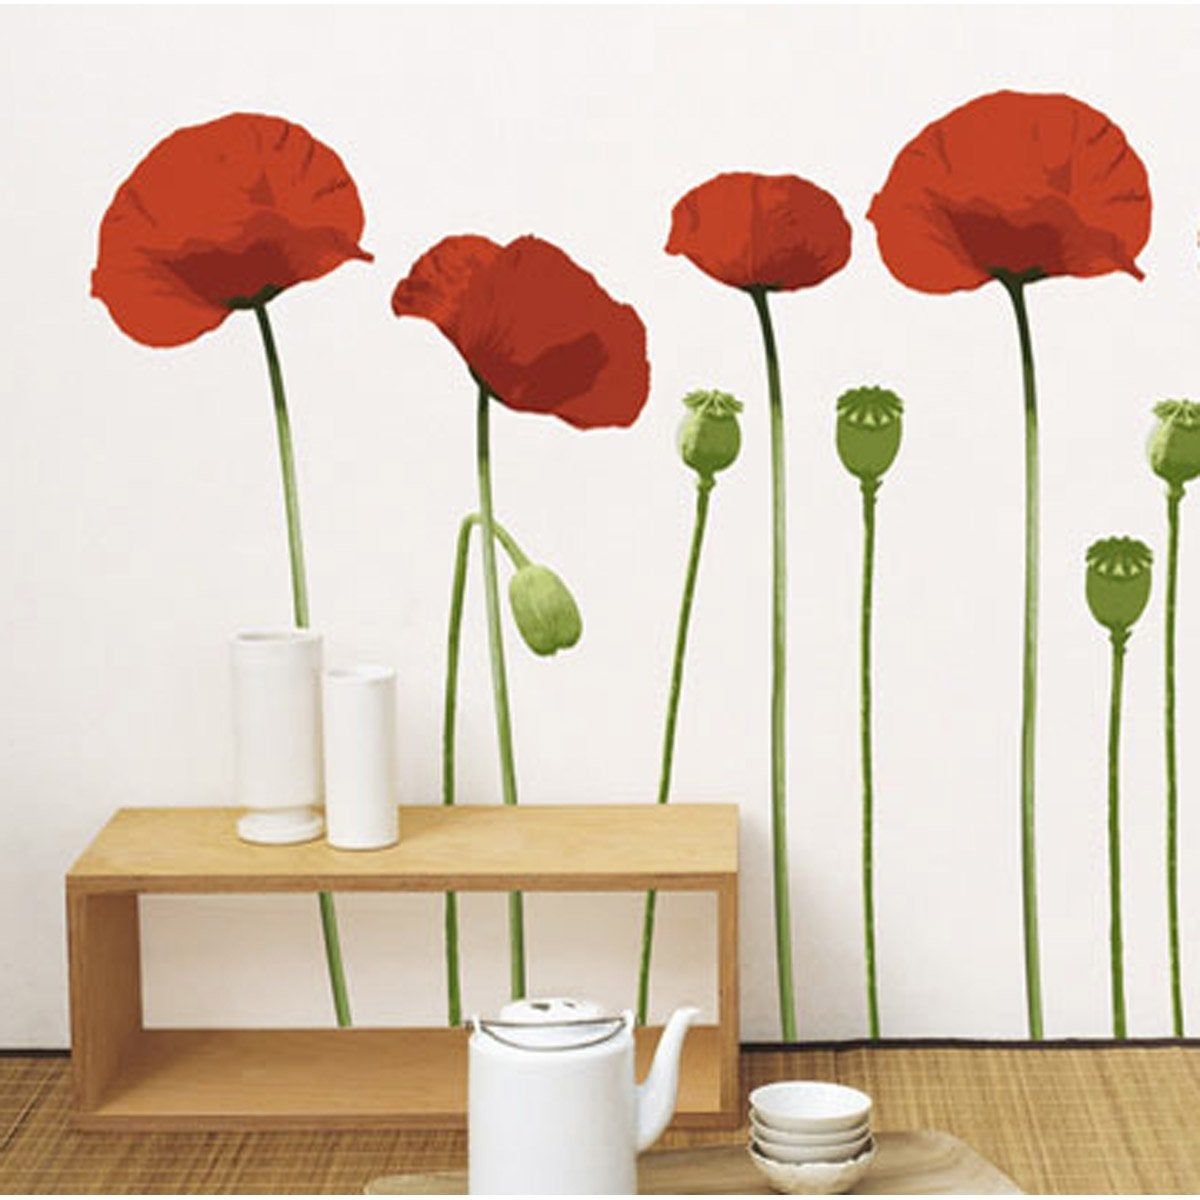 Sticker coquelicot 49 x 69 cm leroy merlin - Stickers carrelage leroy merlin ...